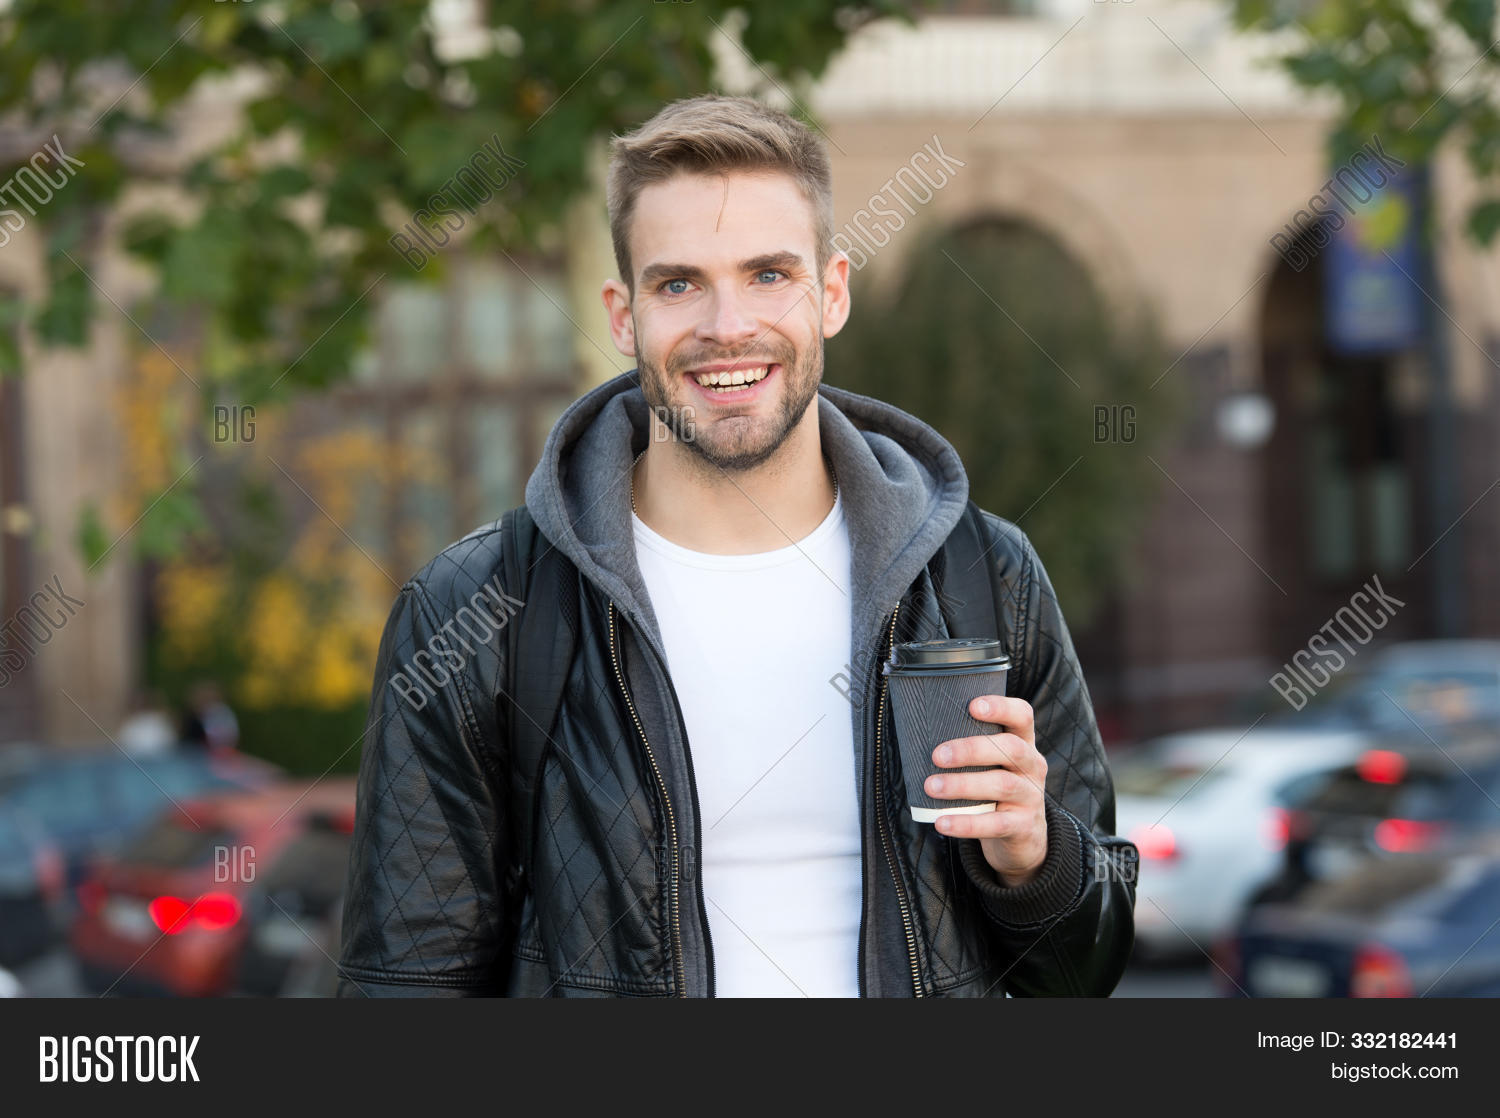 adult,away,beard,bearded,break,cappuccino,cheerful,coffee,cup,determine,drink,energy,enjoy,environment,go,guy,handsome,happy,hipster,hold,inspiration,it,male,man,masculinity,morning,mustache,nature,outdoors,outfit,paper,personality,relaxing,reloading,rest,rituals,smile,smiling,student,stylish,take,tea,time,unshaven,young